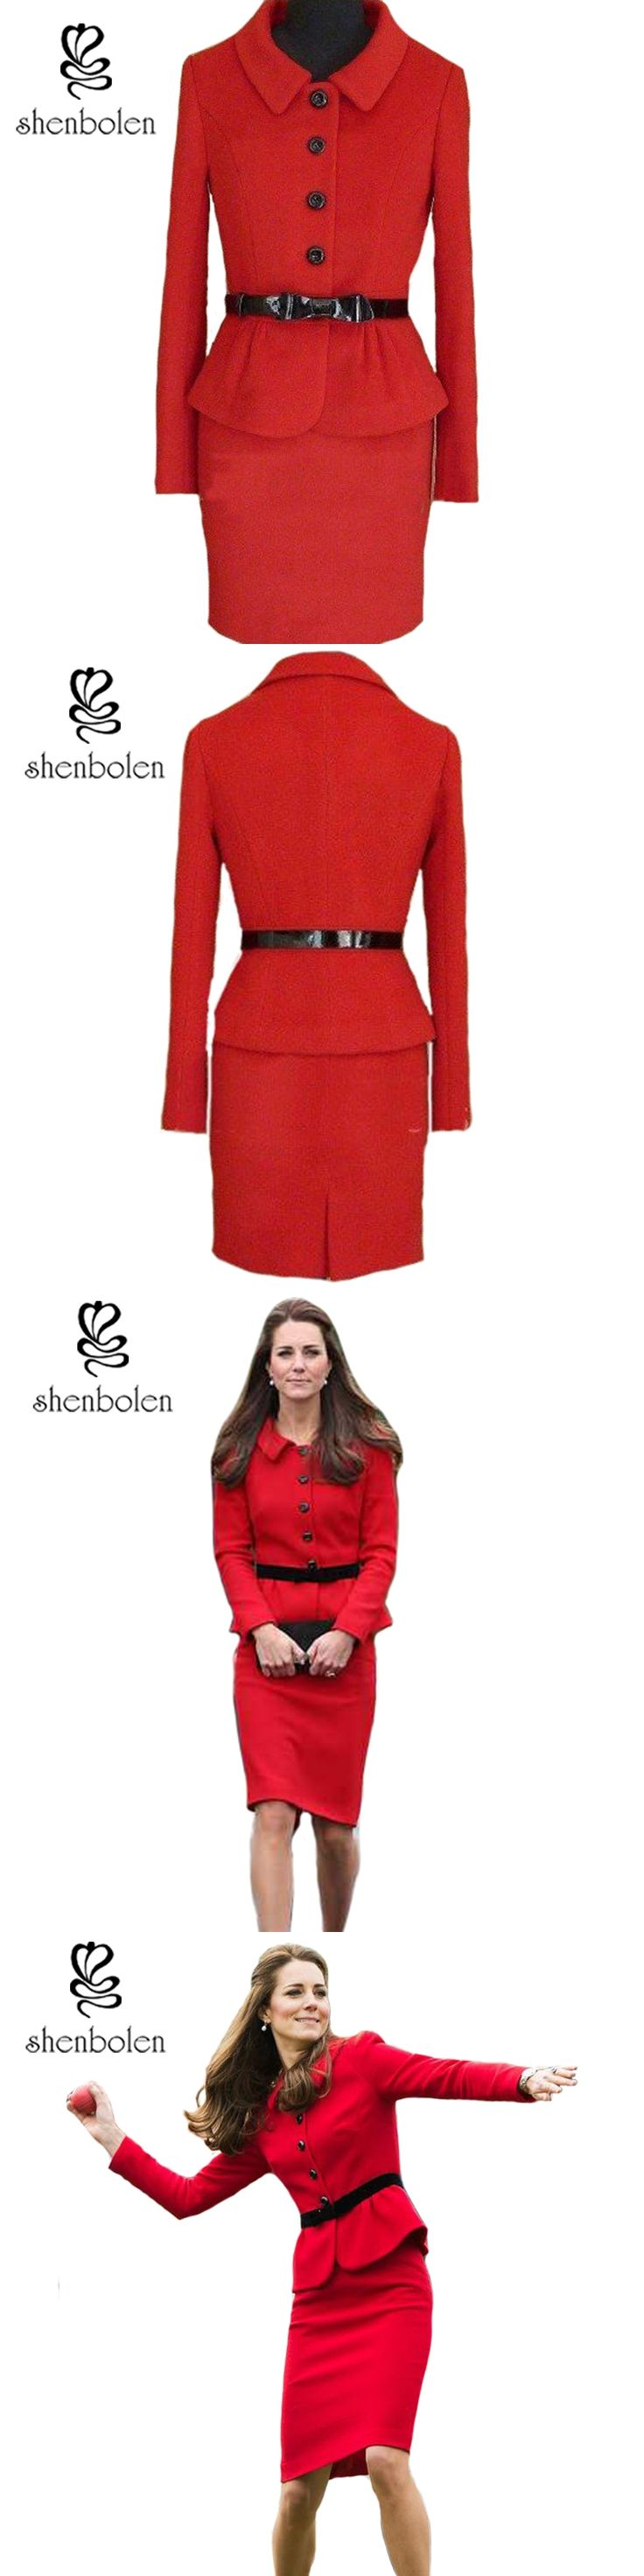 Shenbolen 2017 Early Autumn Best selling Kate Middleton Red Slim Bride Suit Fashion Ladies Business Suit Women's Outwear